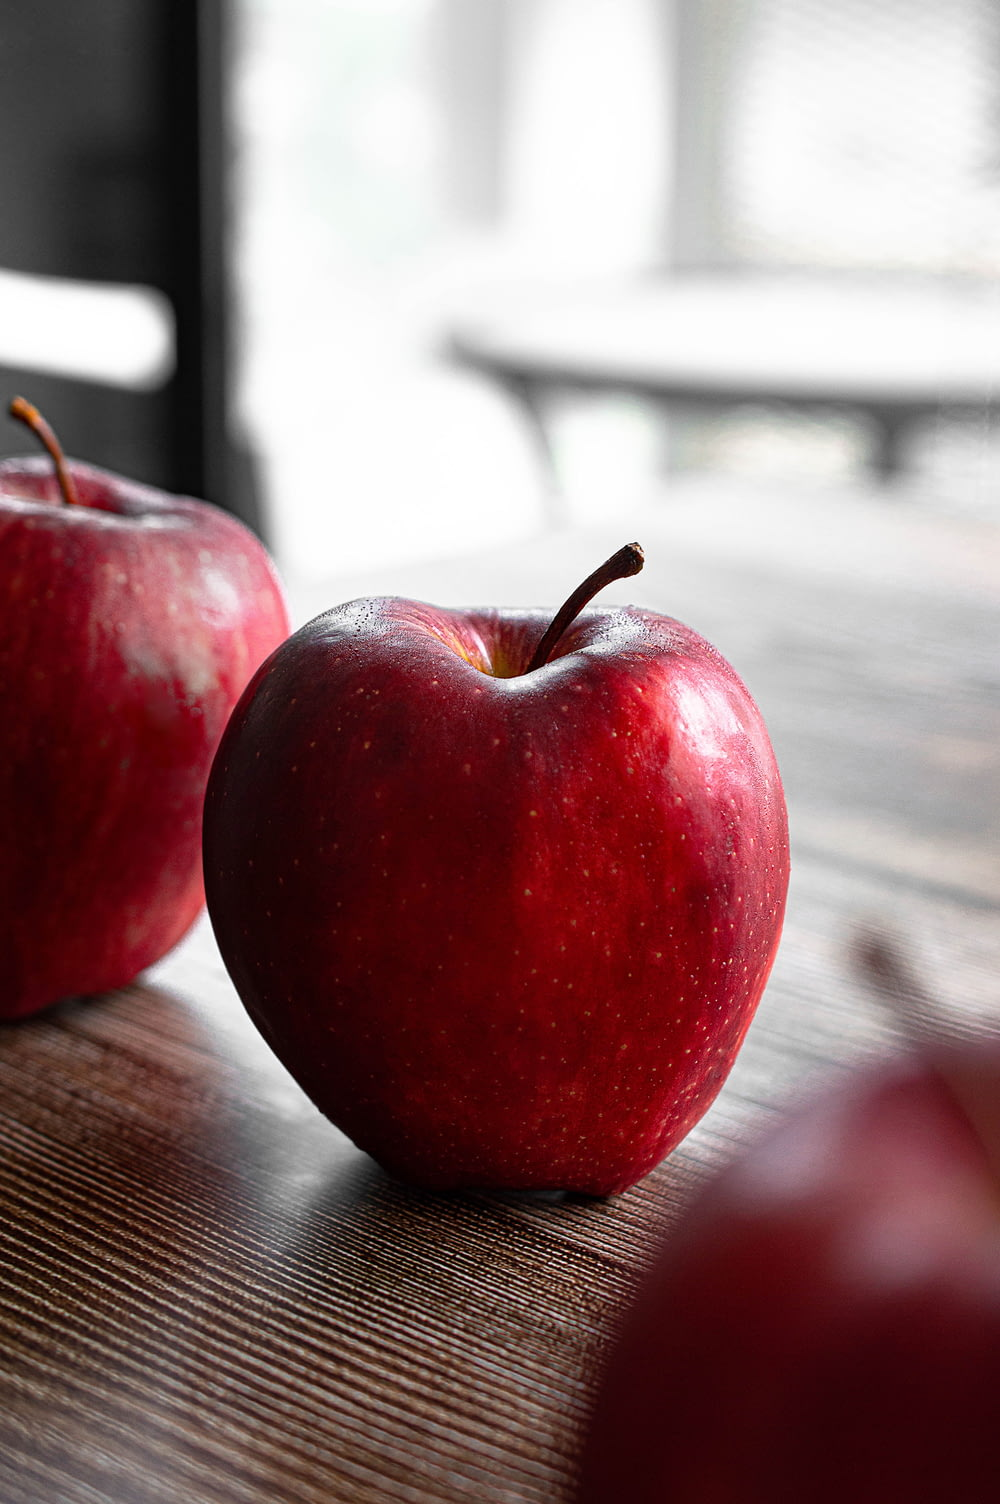 red apple on brown wooden table